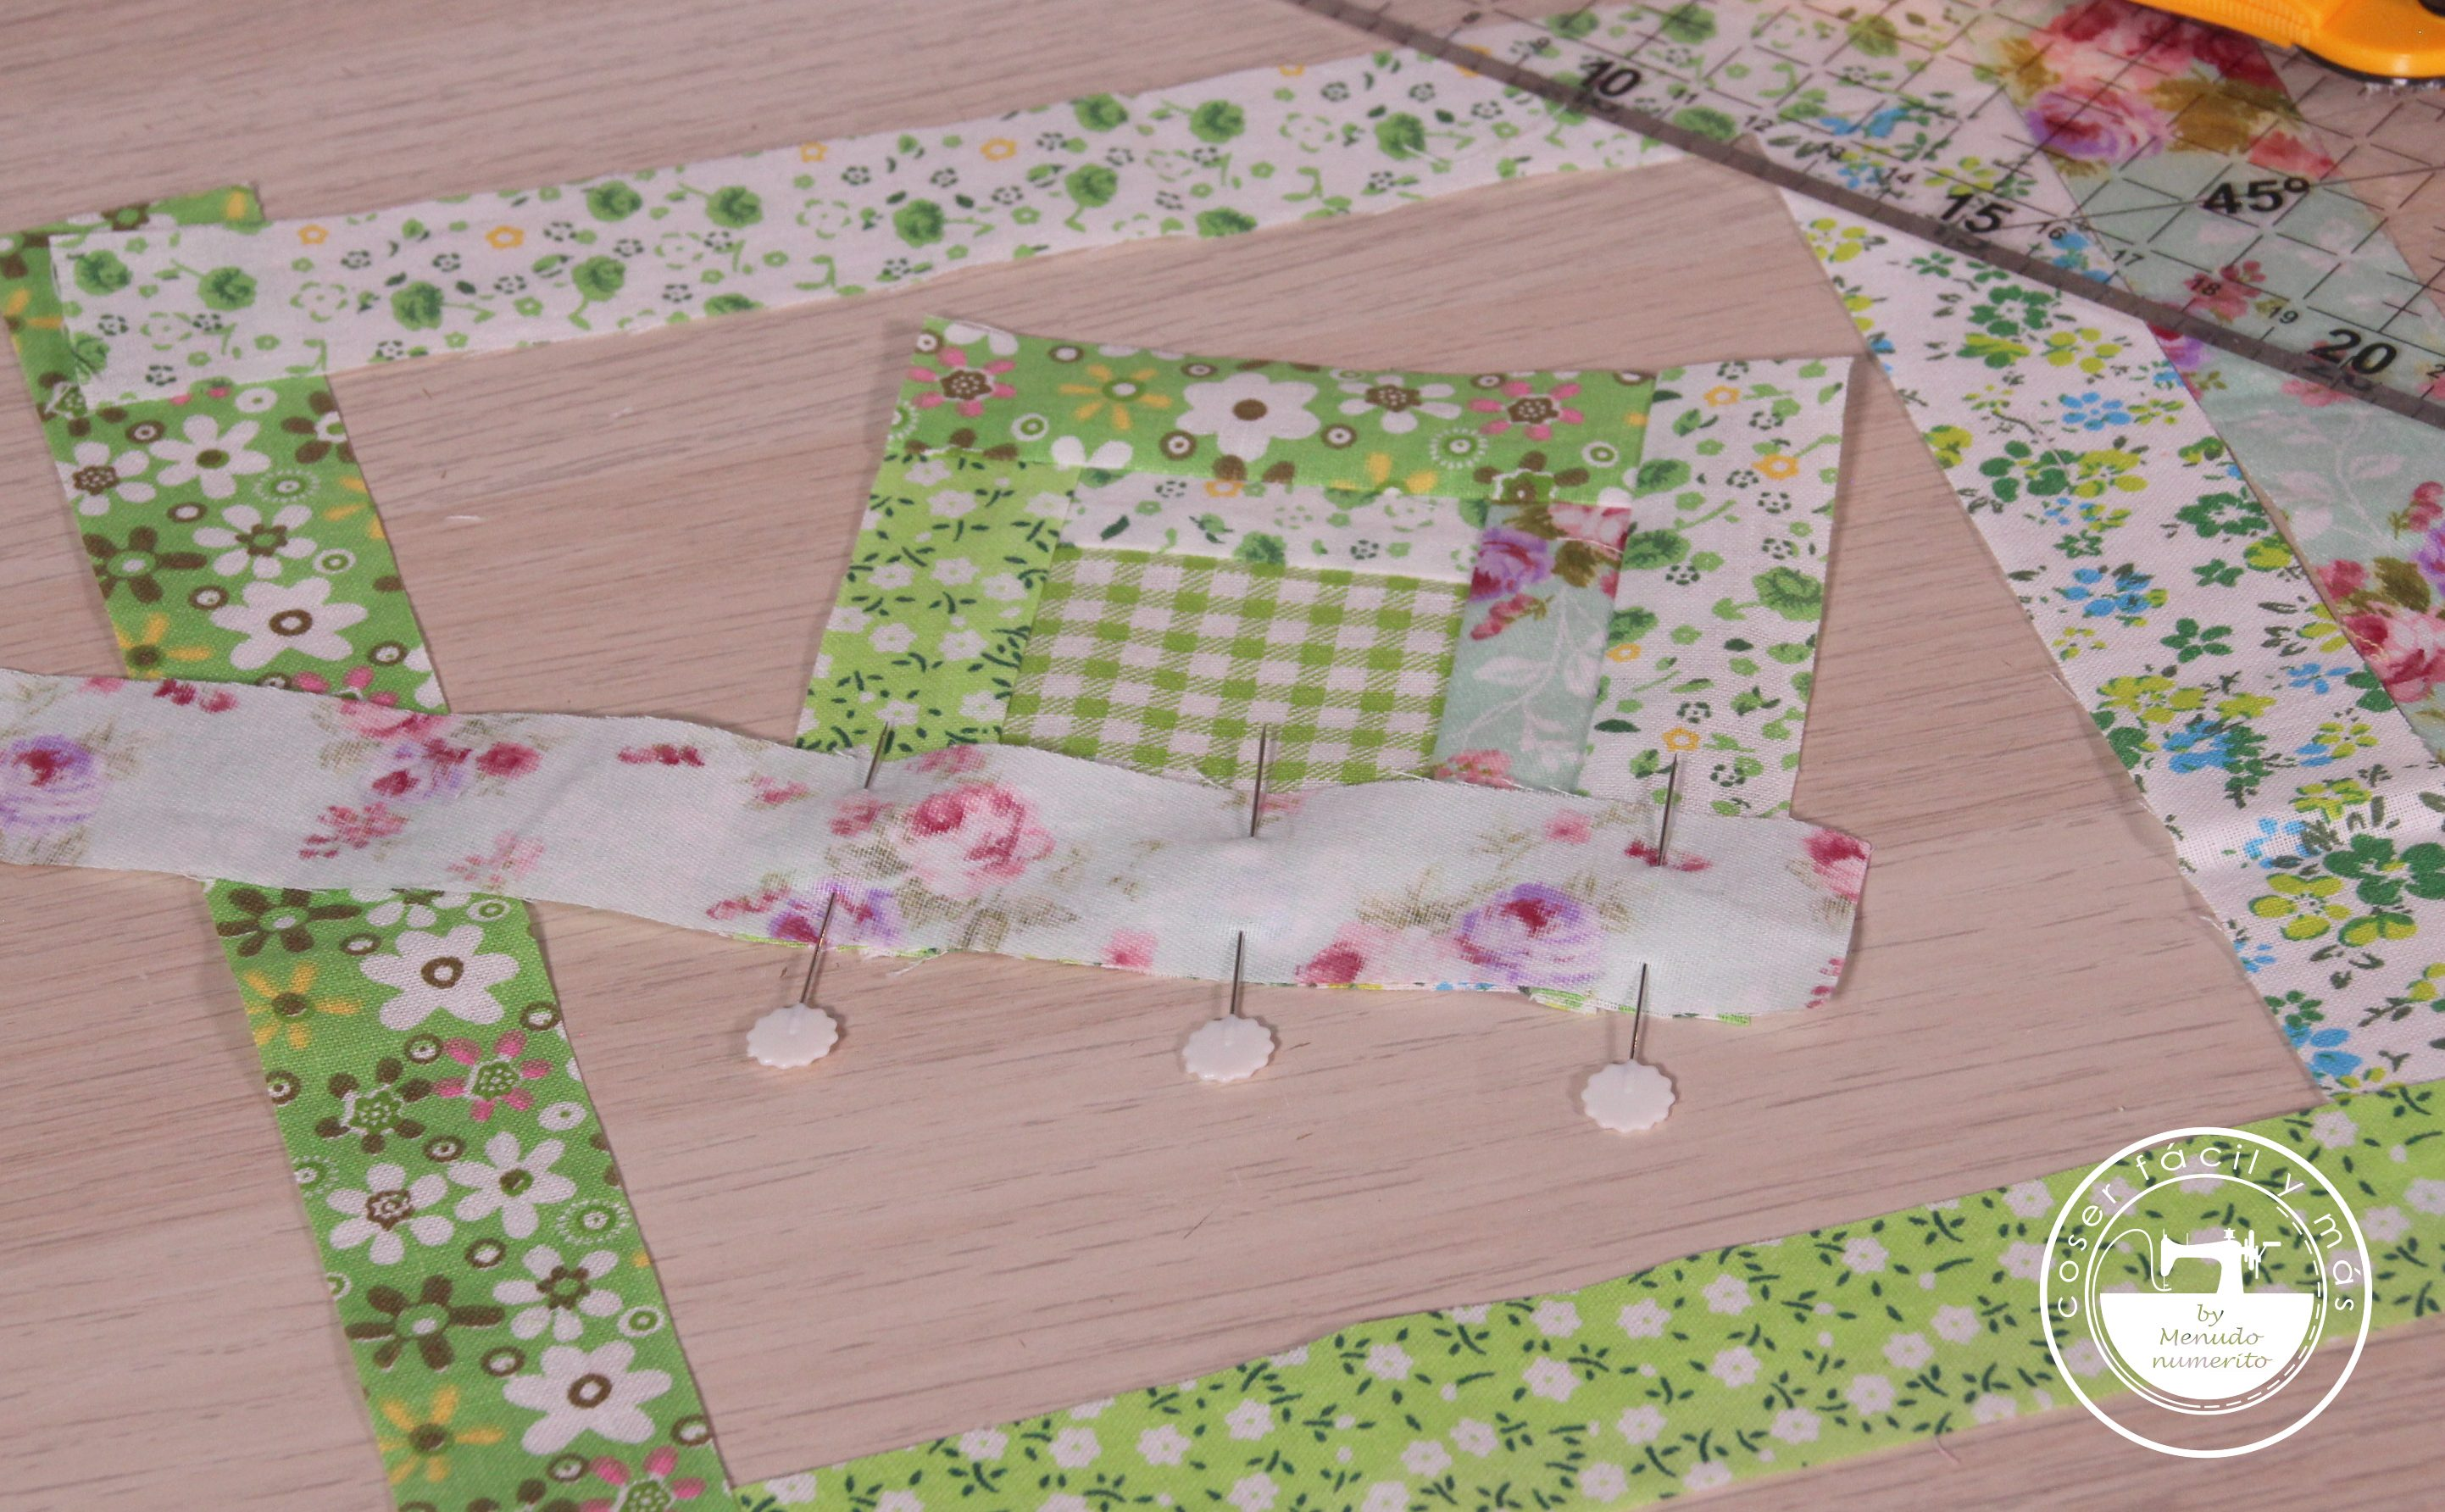 log cabin patchwork coser facil menudo numerito blogs de costura